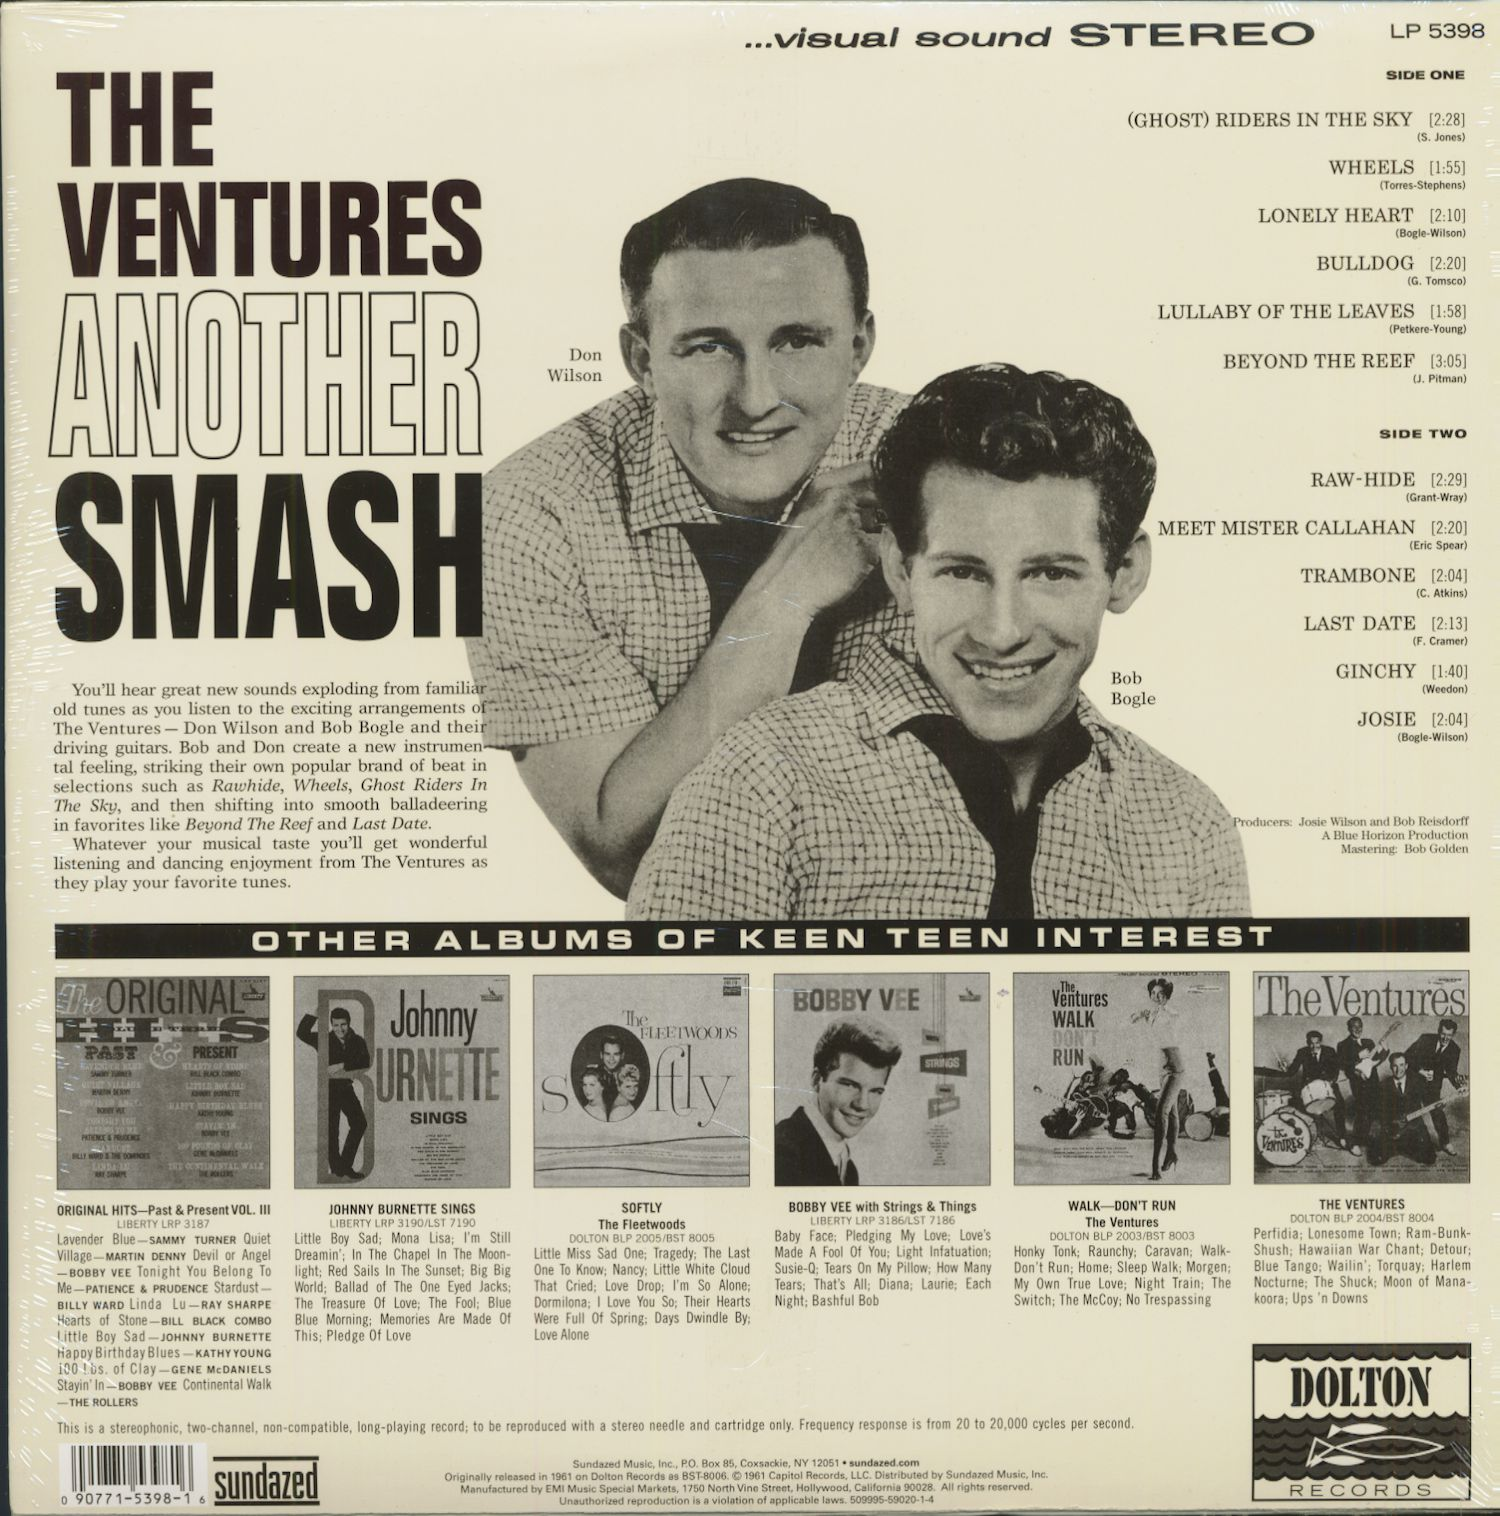 The Ventures Lp Another Smash 1961 180g Limited Edition